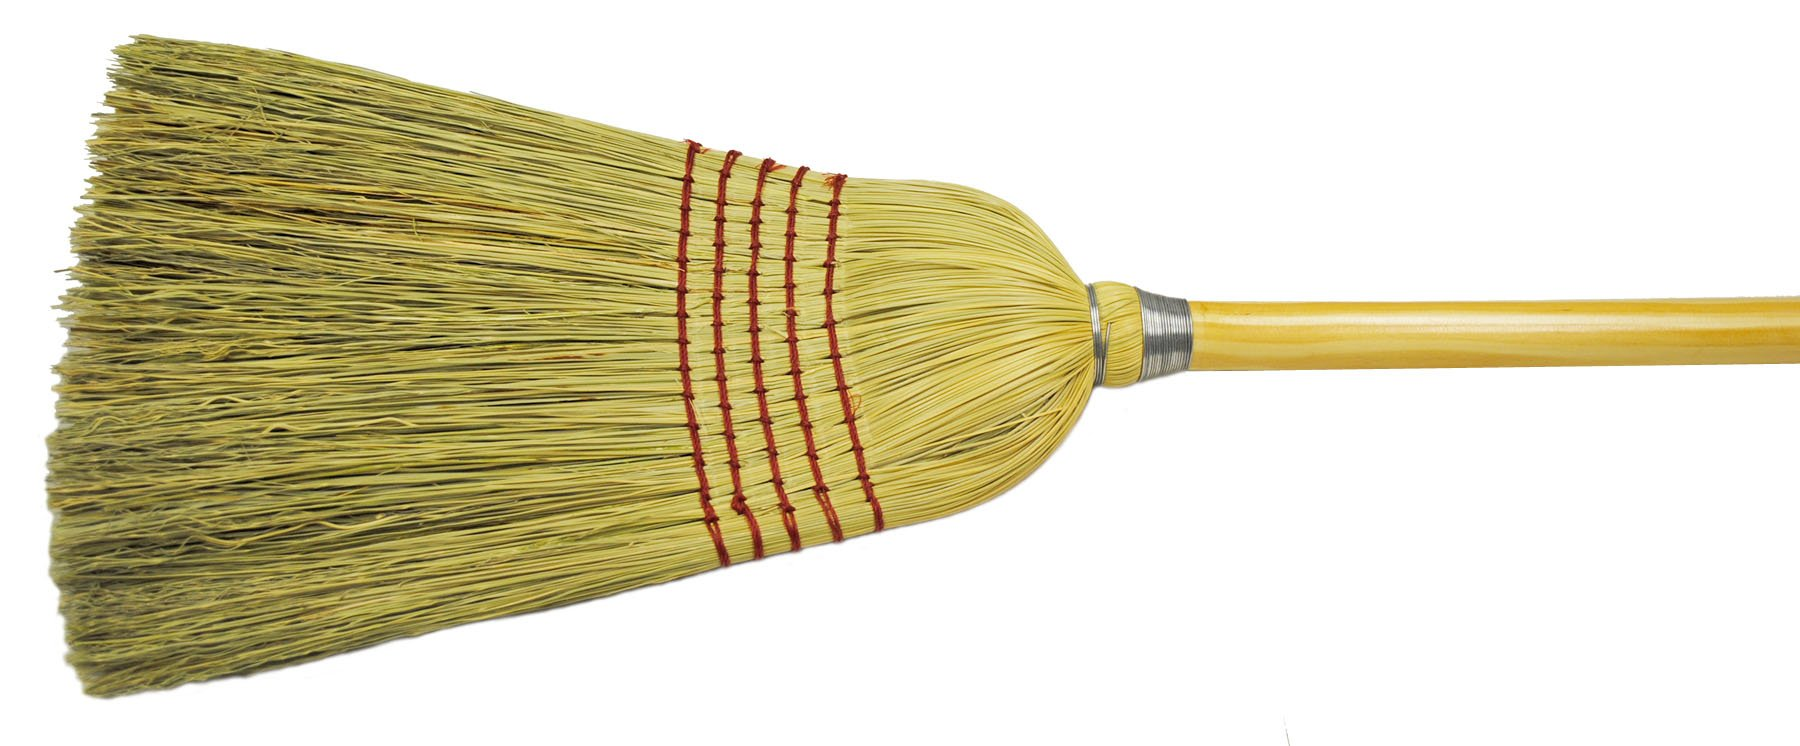 Weiler 70308 Corn Fiber Janitor Upright Broom with Wood Handle, 1-1/2'' Head Width, 57'' Overall Length, Natural